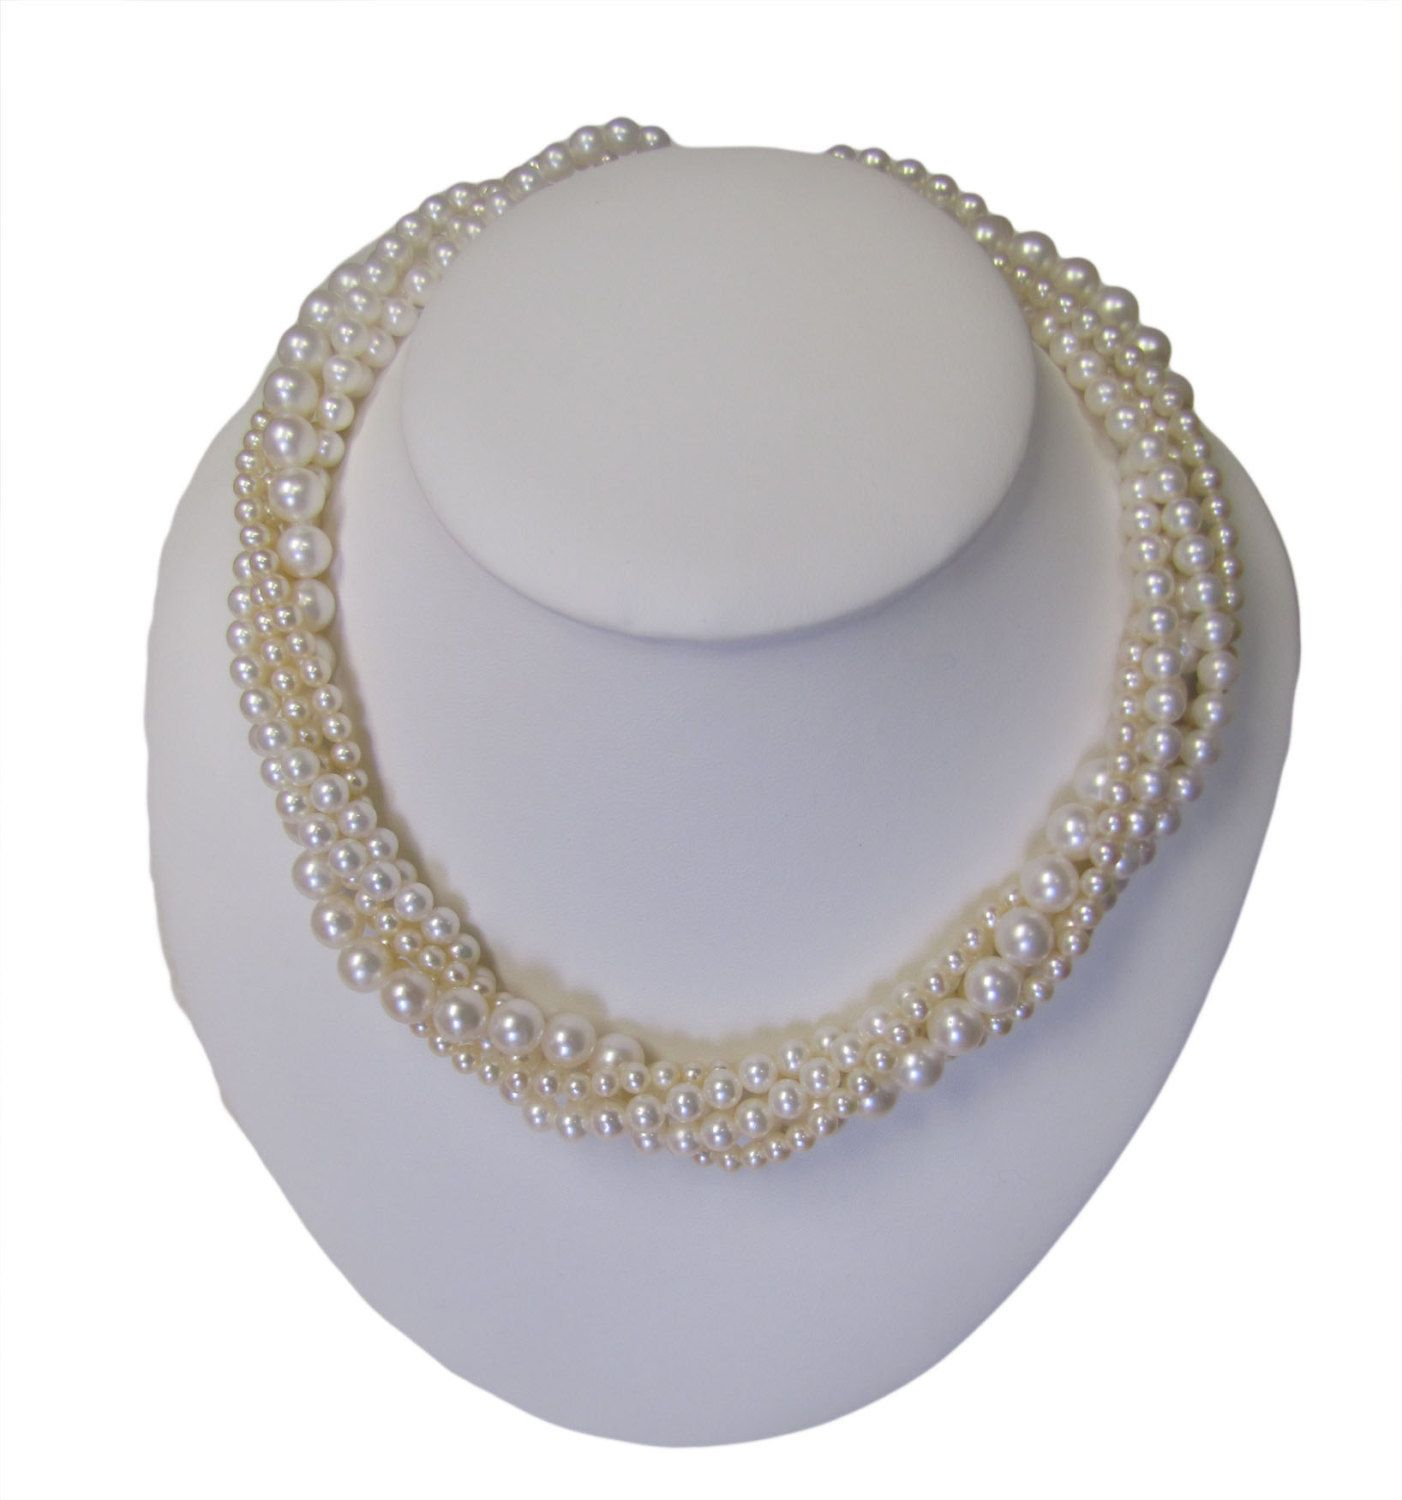 """Beautiful, high quality, high luster fresh water cultured pearl torsade / twist necklace 925 silver, 5 rows, 4-8mm, 18"""", hand strung by ClarielDesigns on Etsy"""